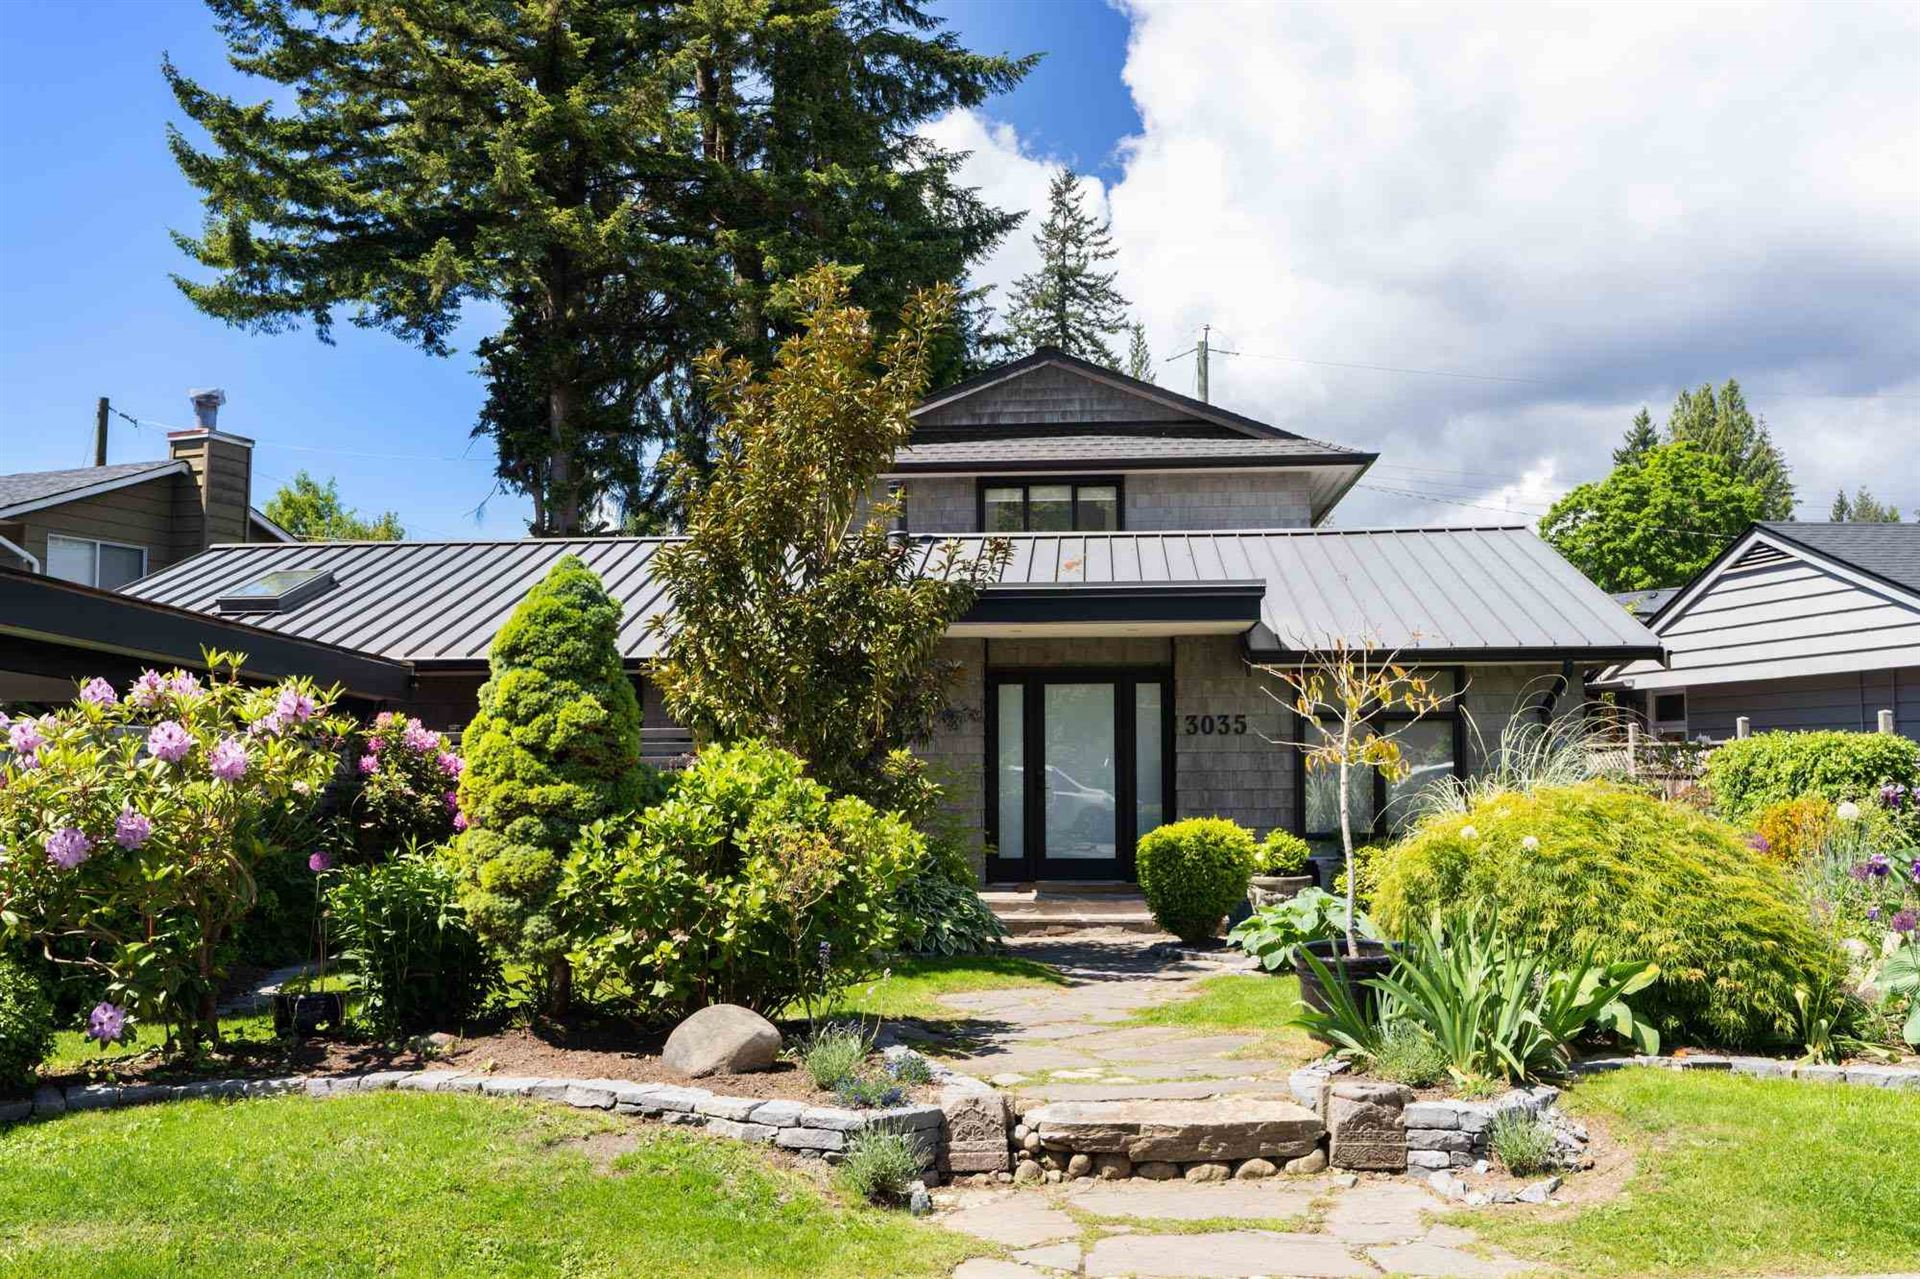 Photo of 3035 BEVERLEY CRESCENT, North Vancouver, BC V7R 2W4 (MLS # R2605746)